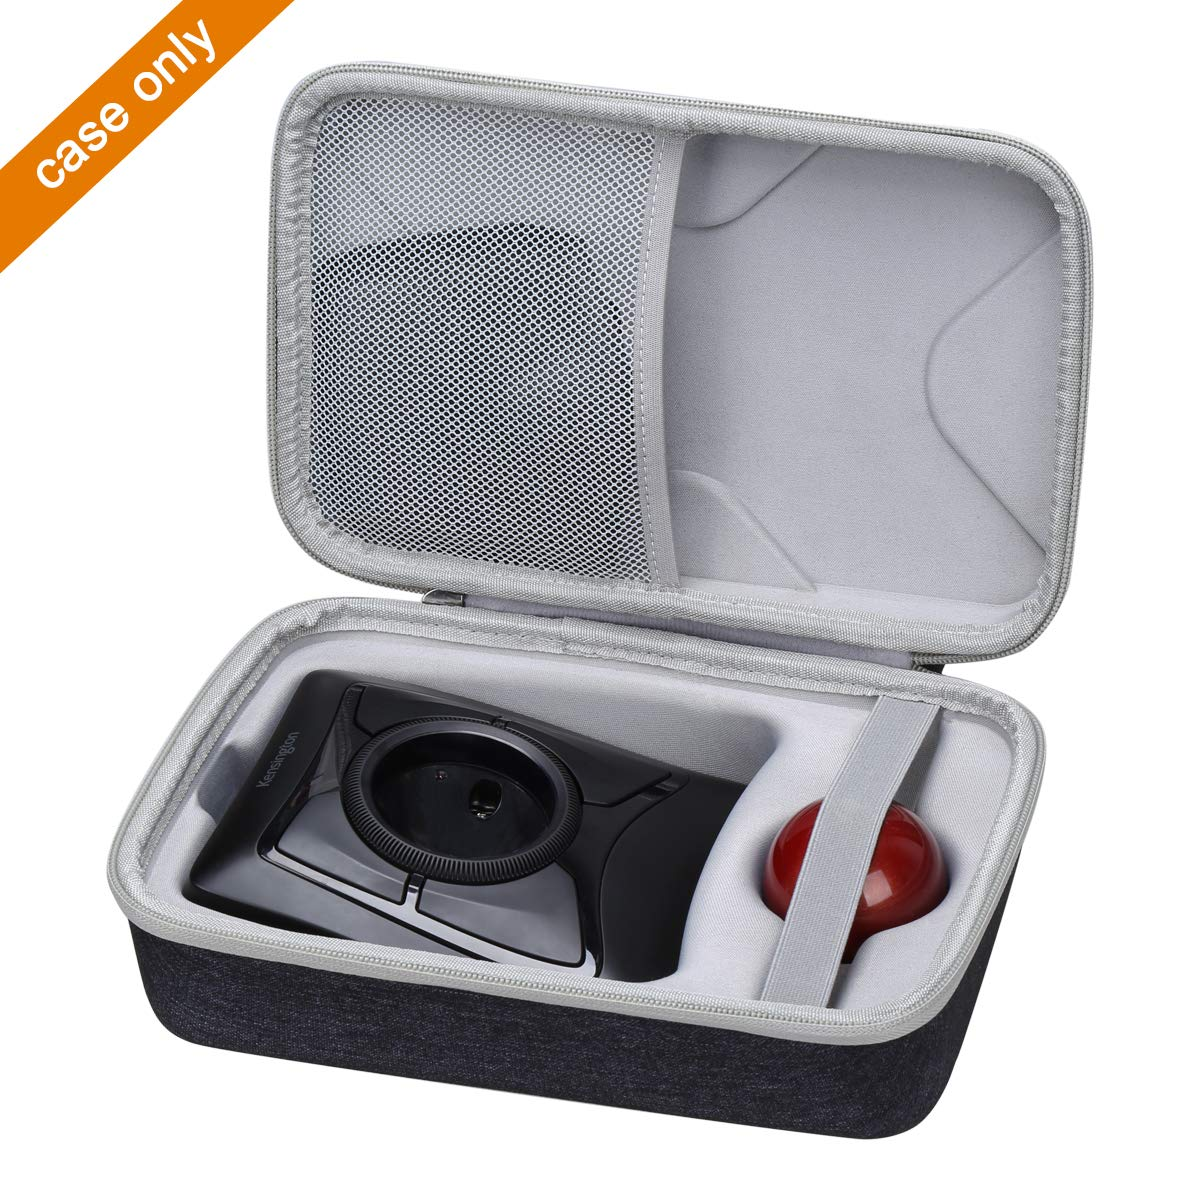 Aproca Hard Carry Travel Case Compatible with Kensington Expert Wireless/Wired Trackball Mouse K72359WW / K64325 by Aproca